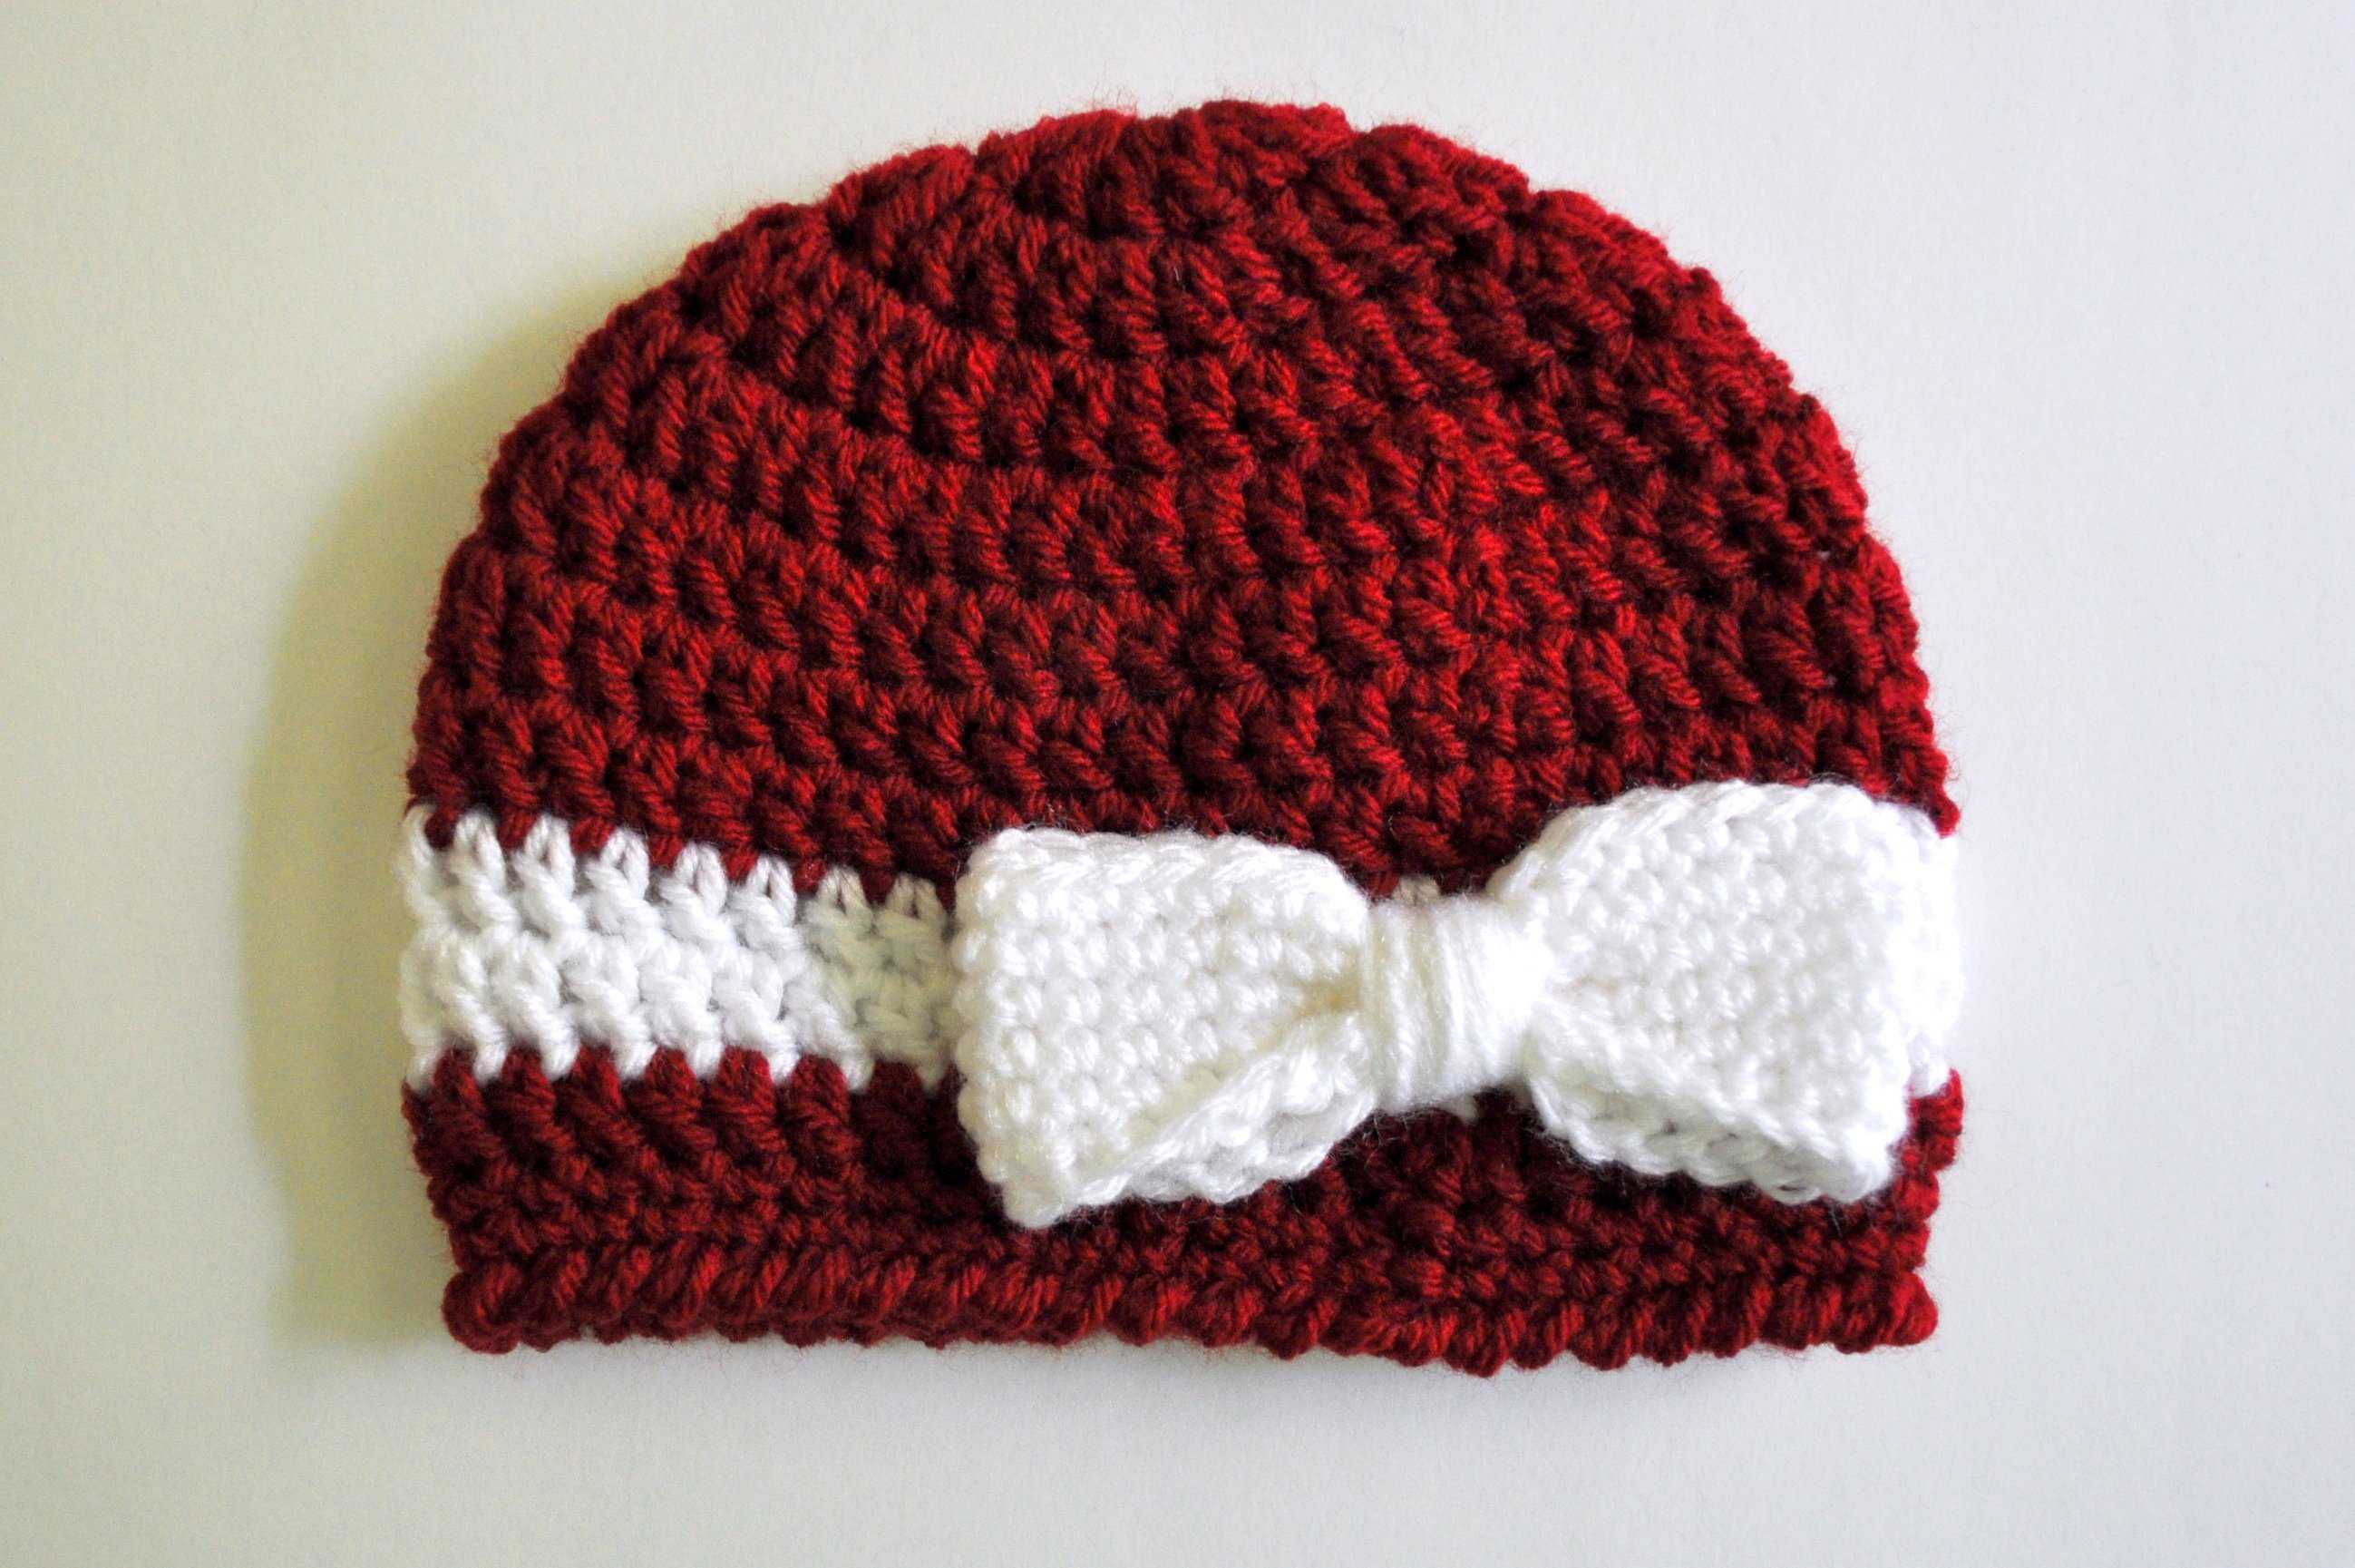 Free Crochet Hat Patterns : 25 Easy Crochet Bow Patterns Guide Patterns